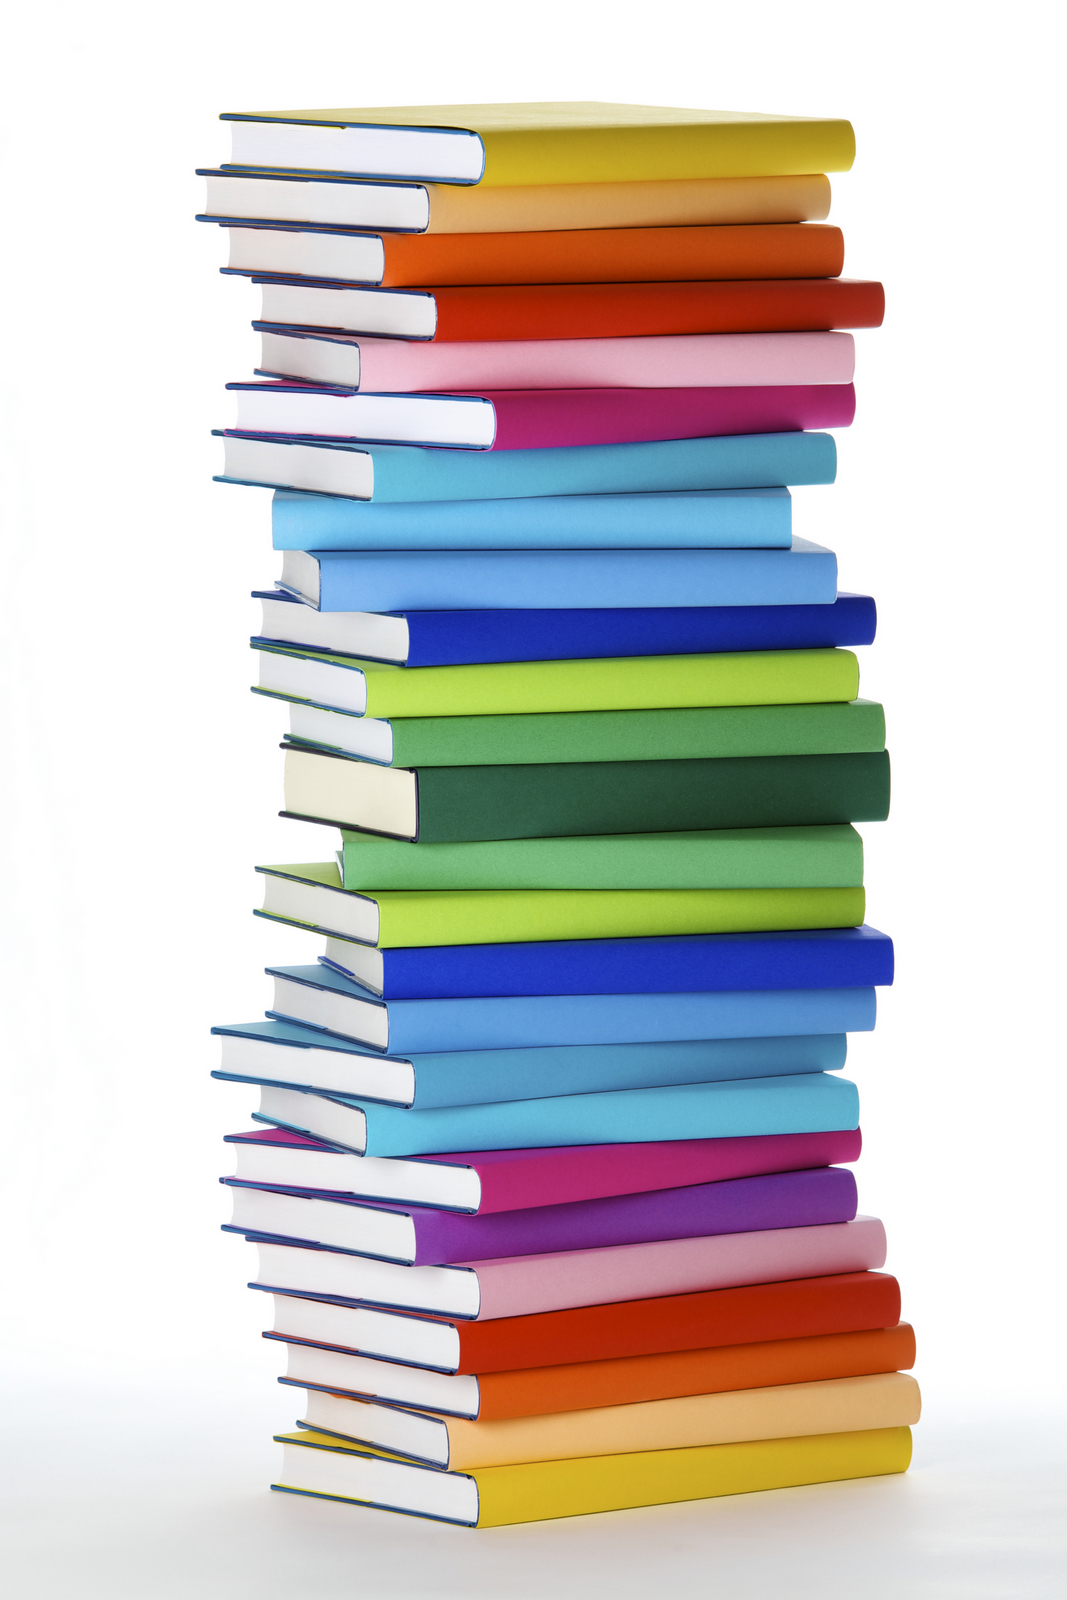 Tall stack of books clipart craft projects school jpg